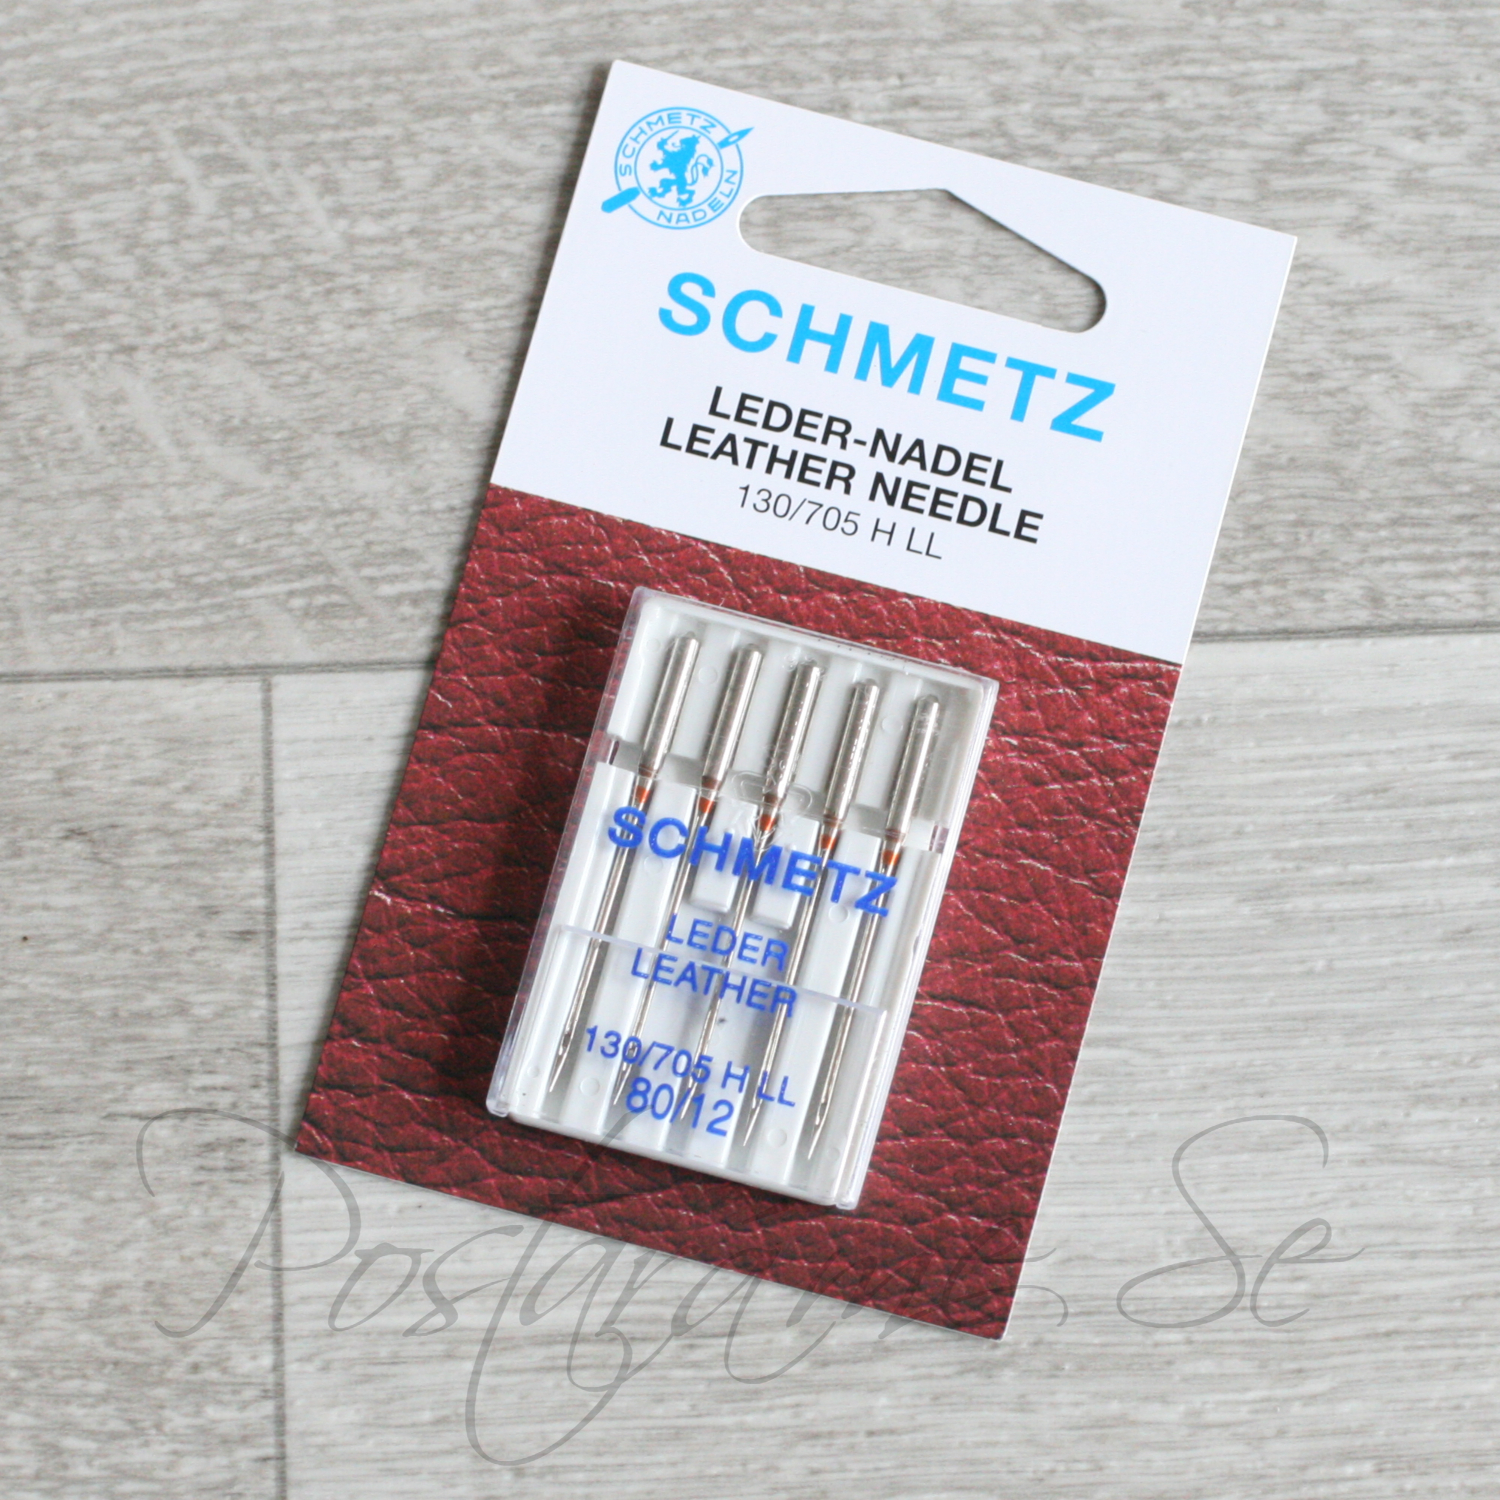 Schmetz leather 90